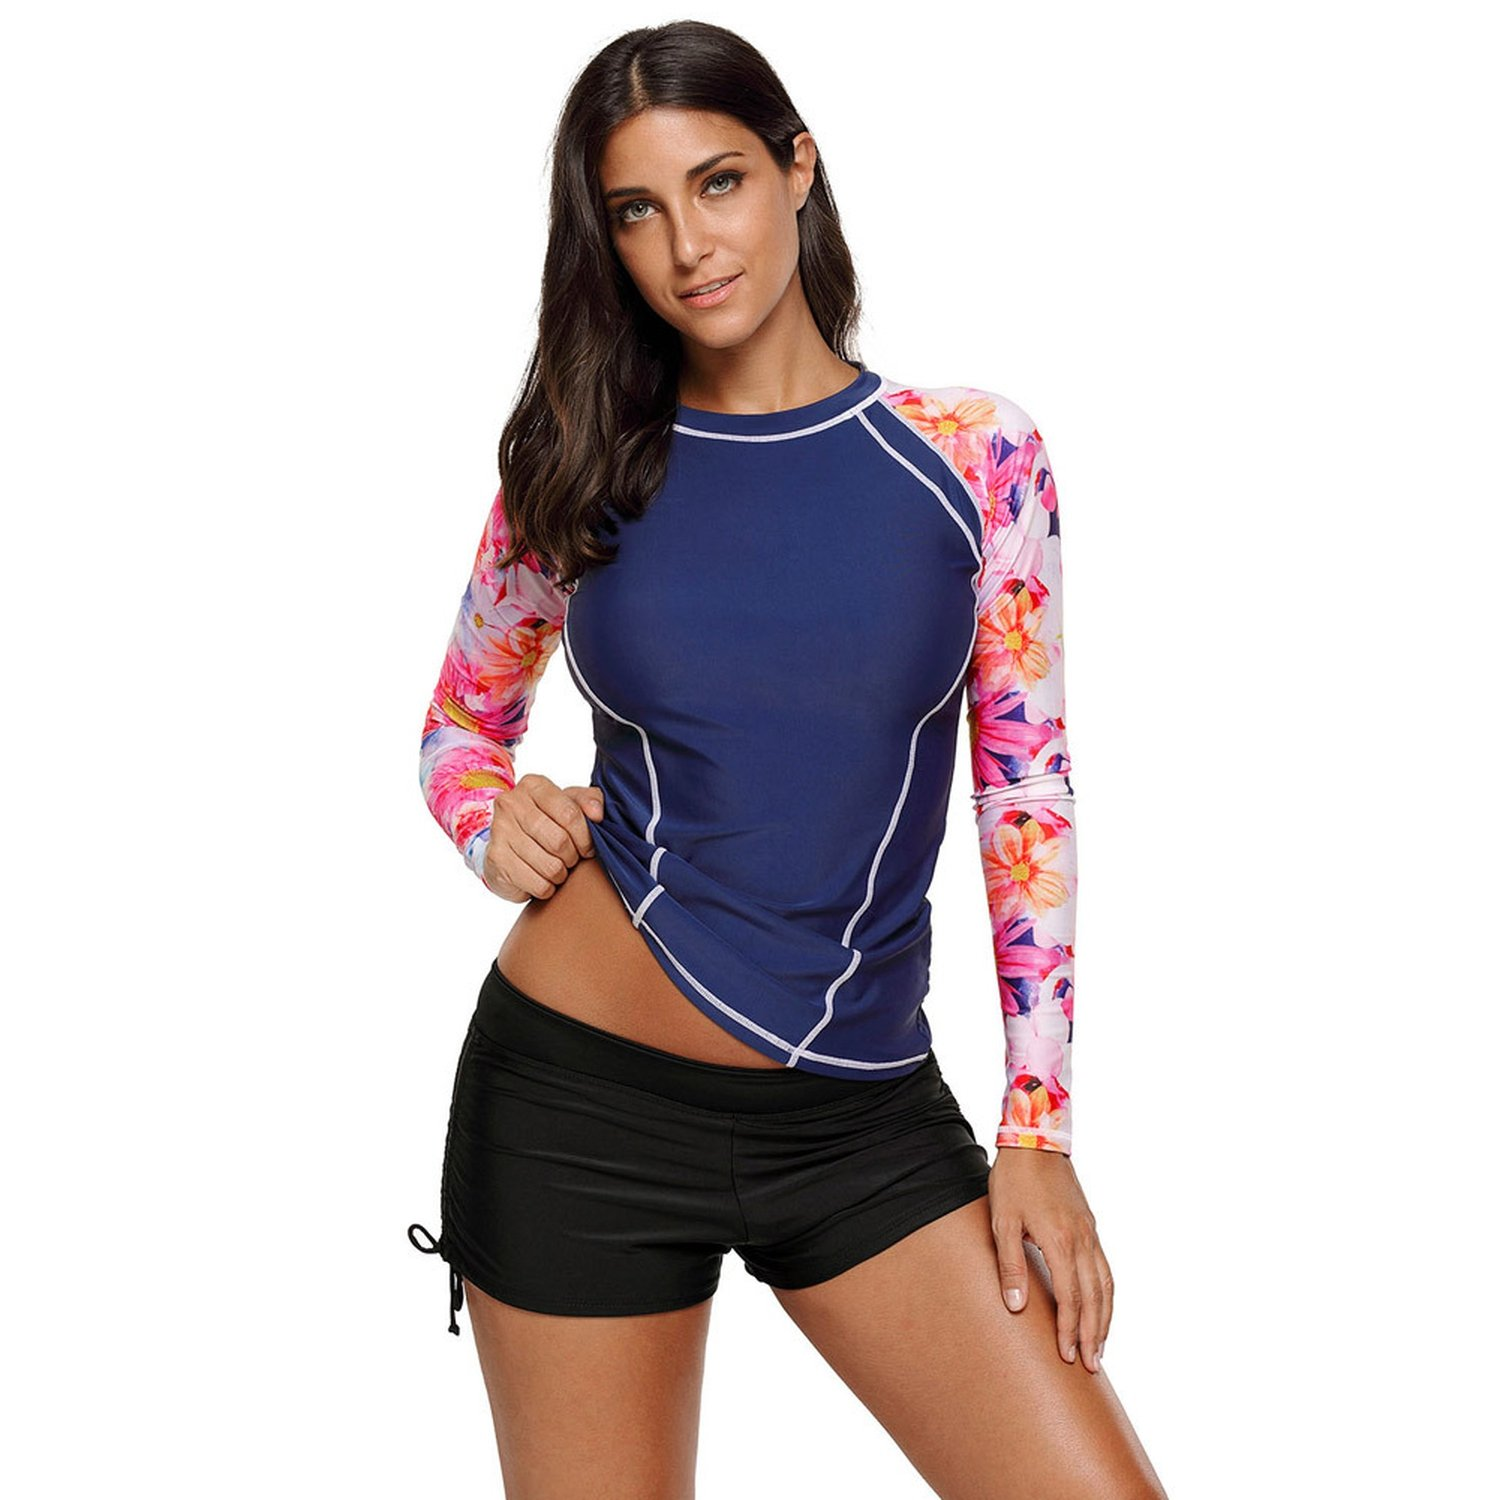 Yntmerry Swimsuits New Split Swimsuit Print One-Piece Shirt Large Yard Long-Sleeved Swimsuit 410453